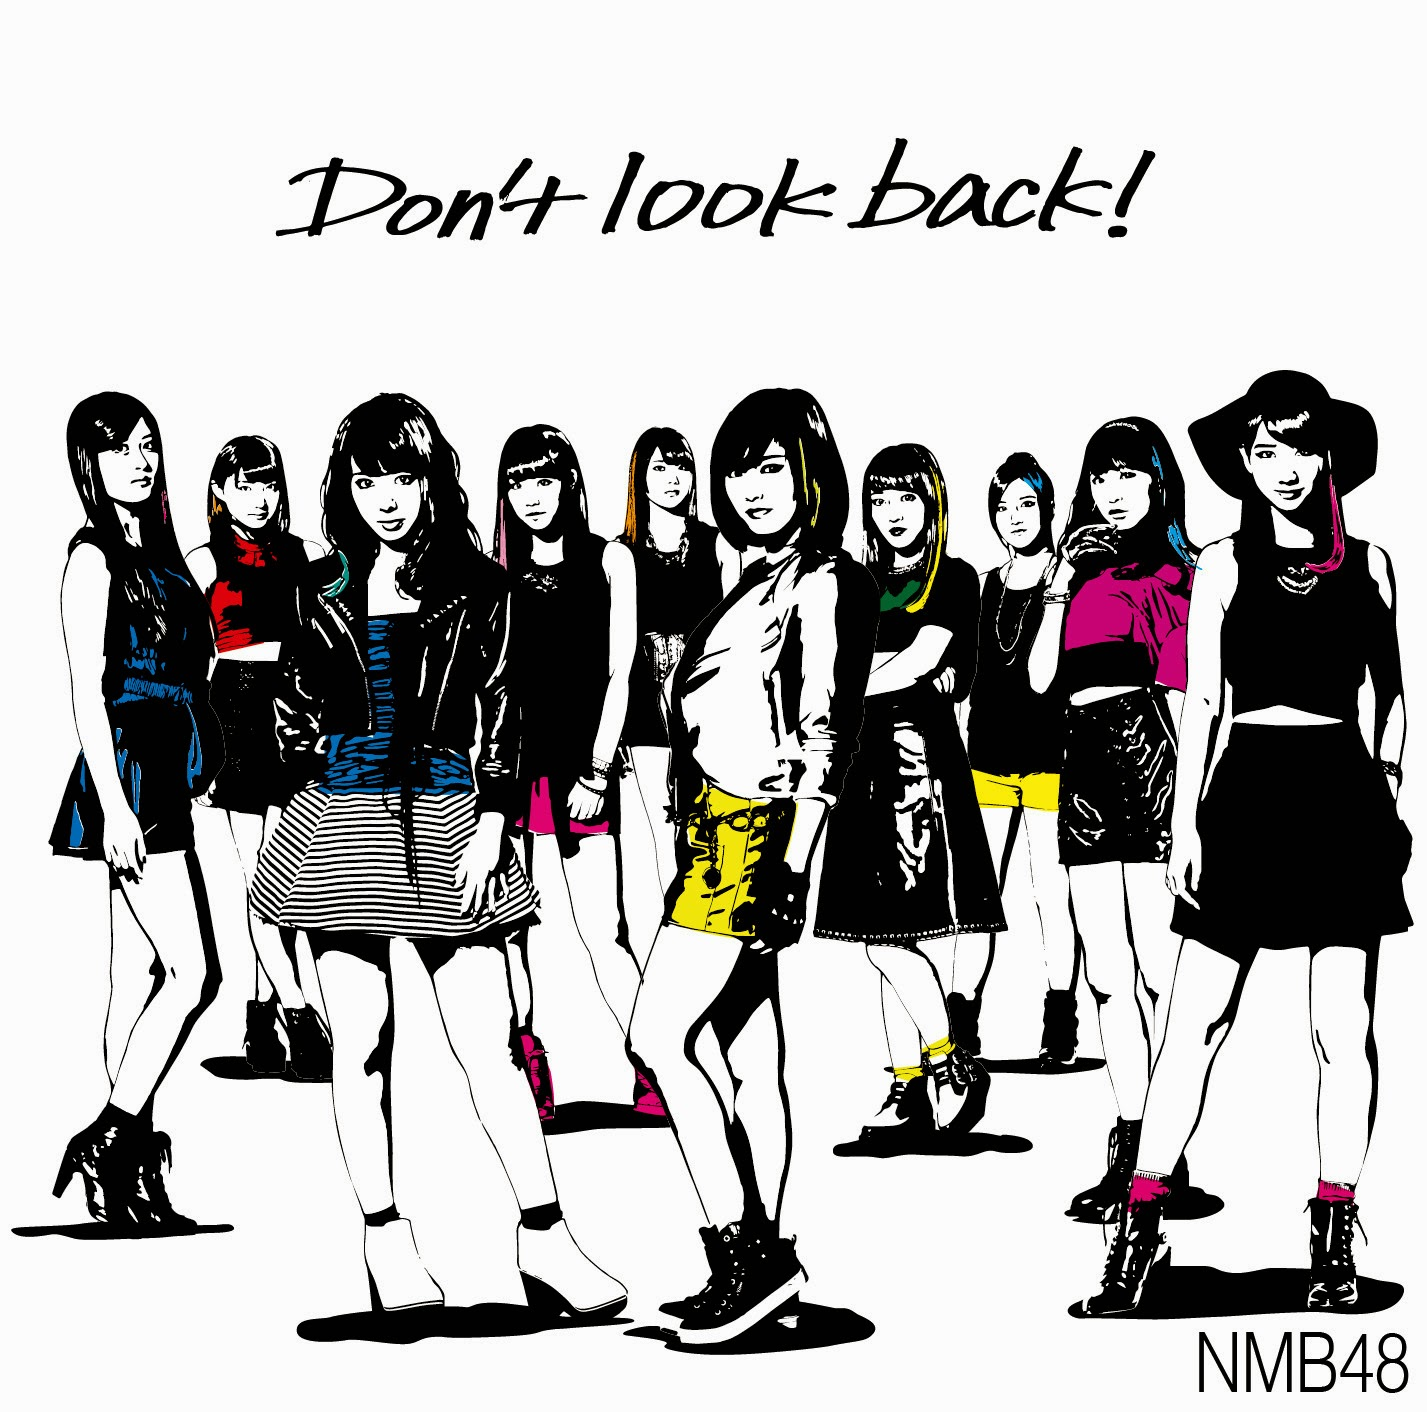 cover-single-11-nmb48-type-a-dont-look-back-regular-edition